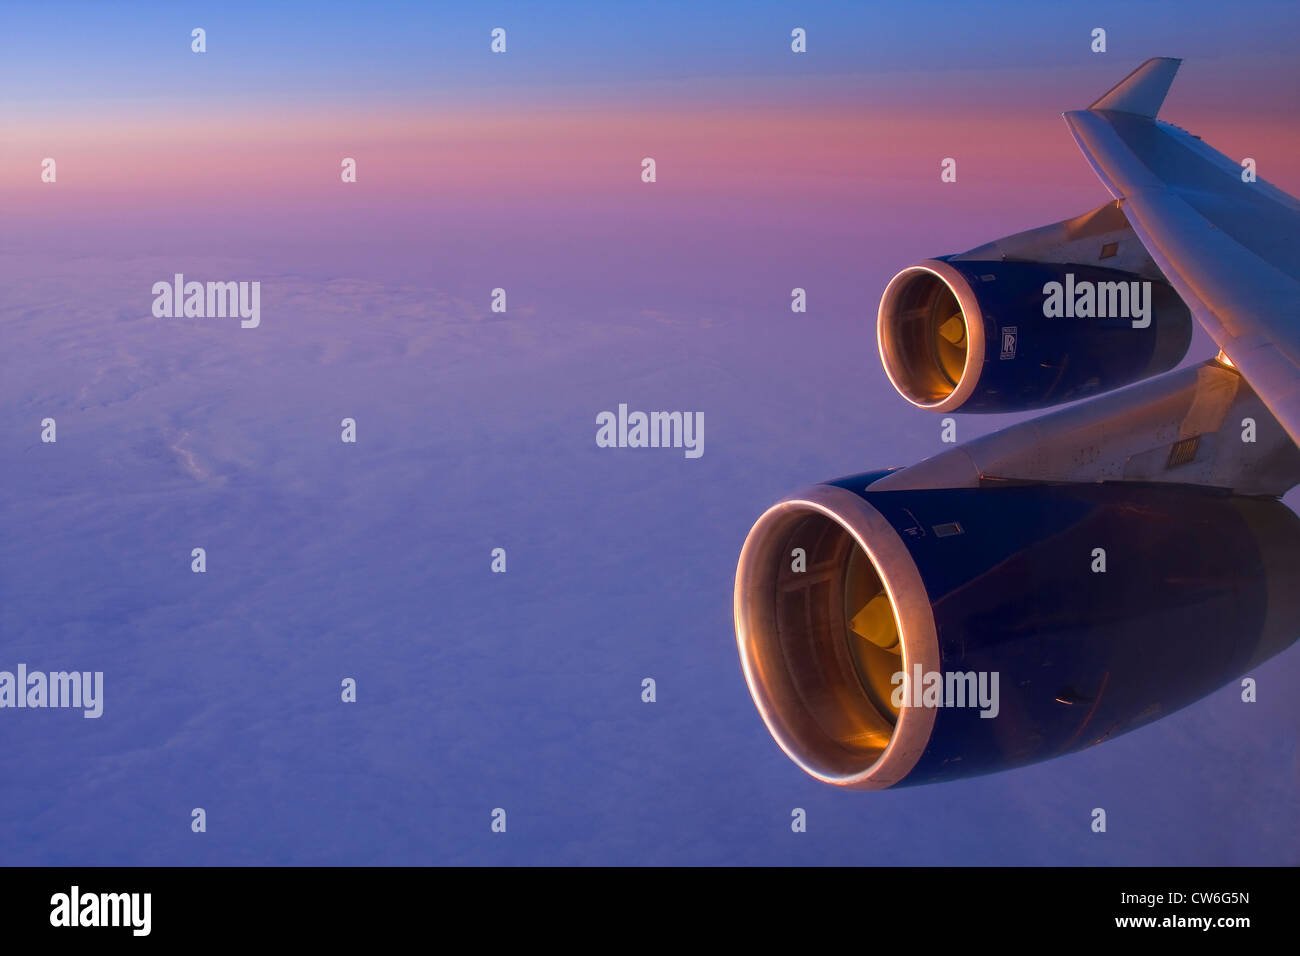 Boing 747in flight, Rolls-Royce engines shining in evening light - Stock Image